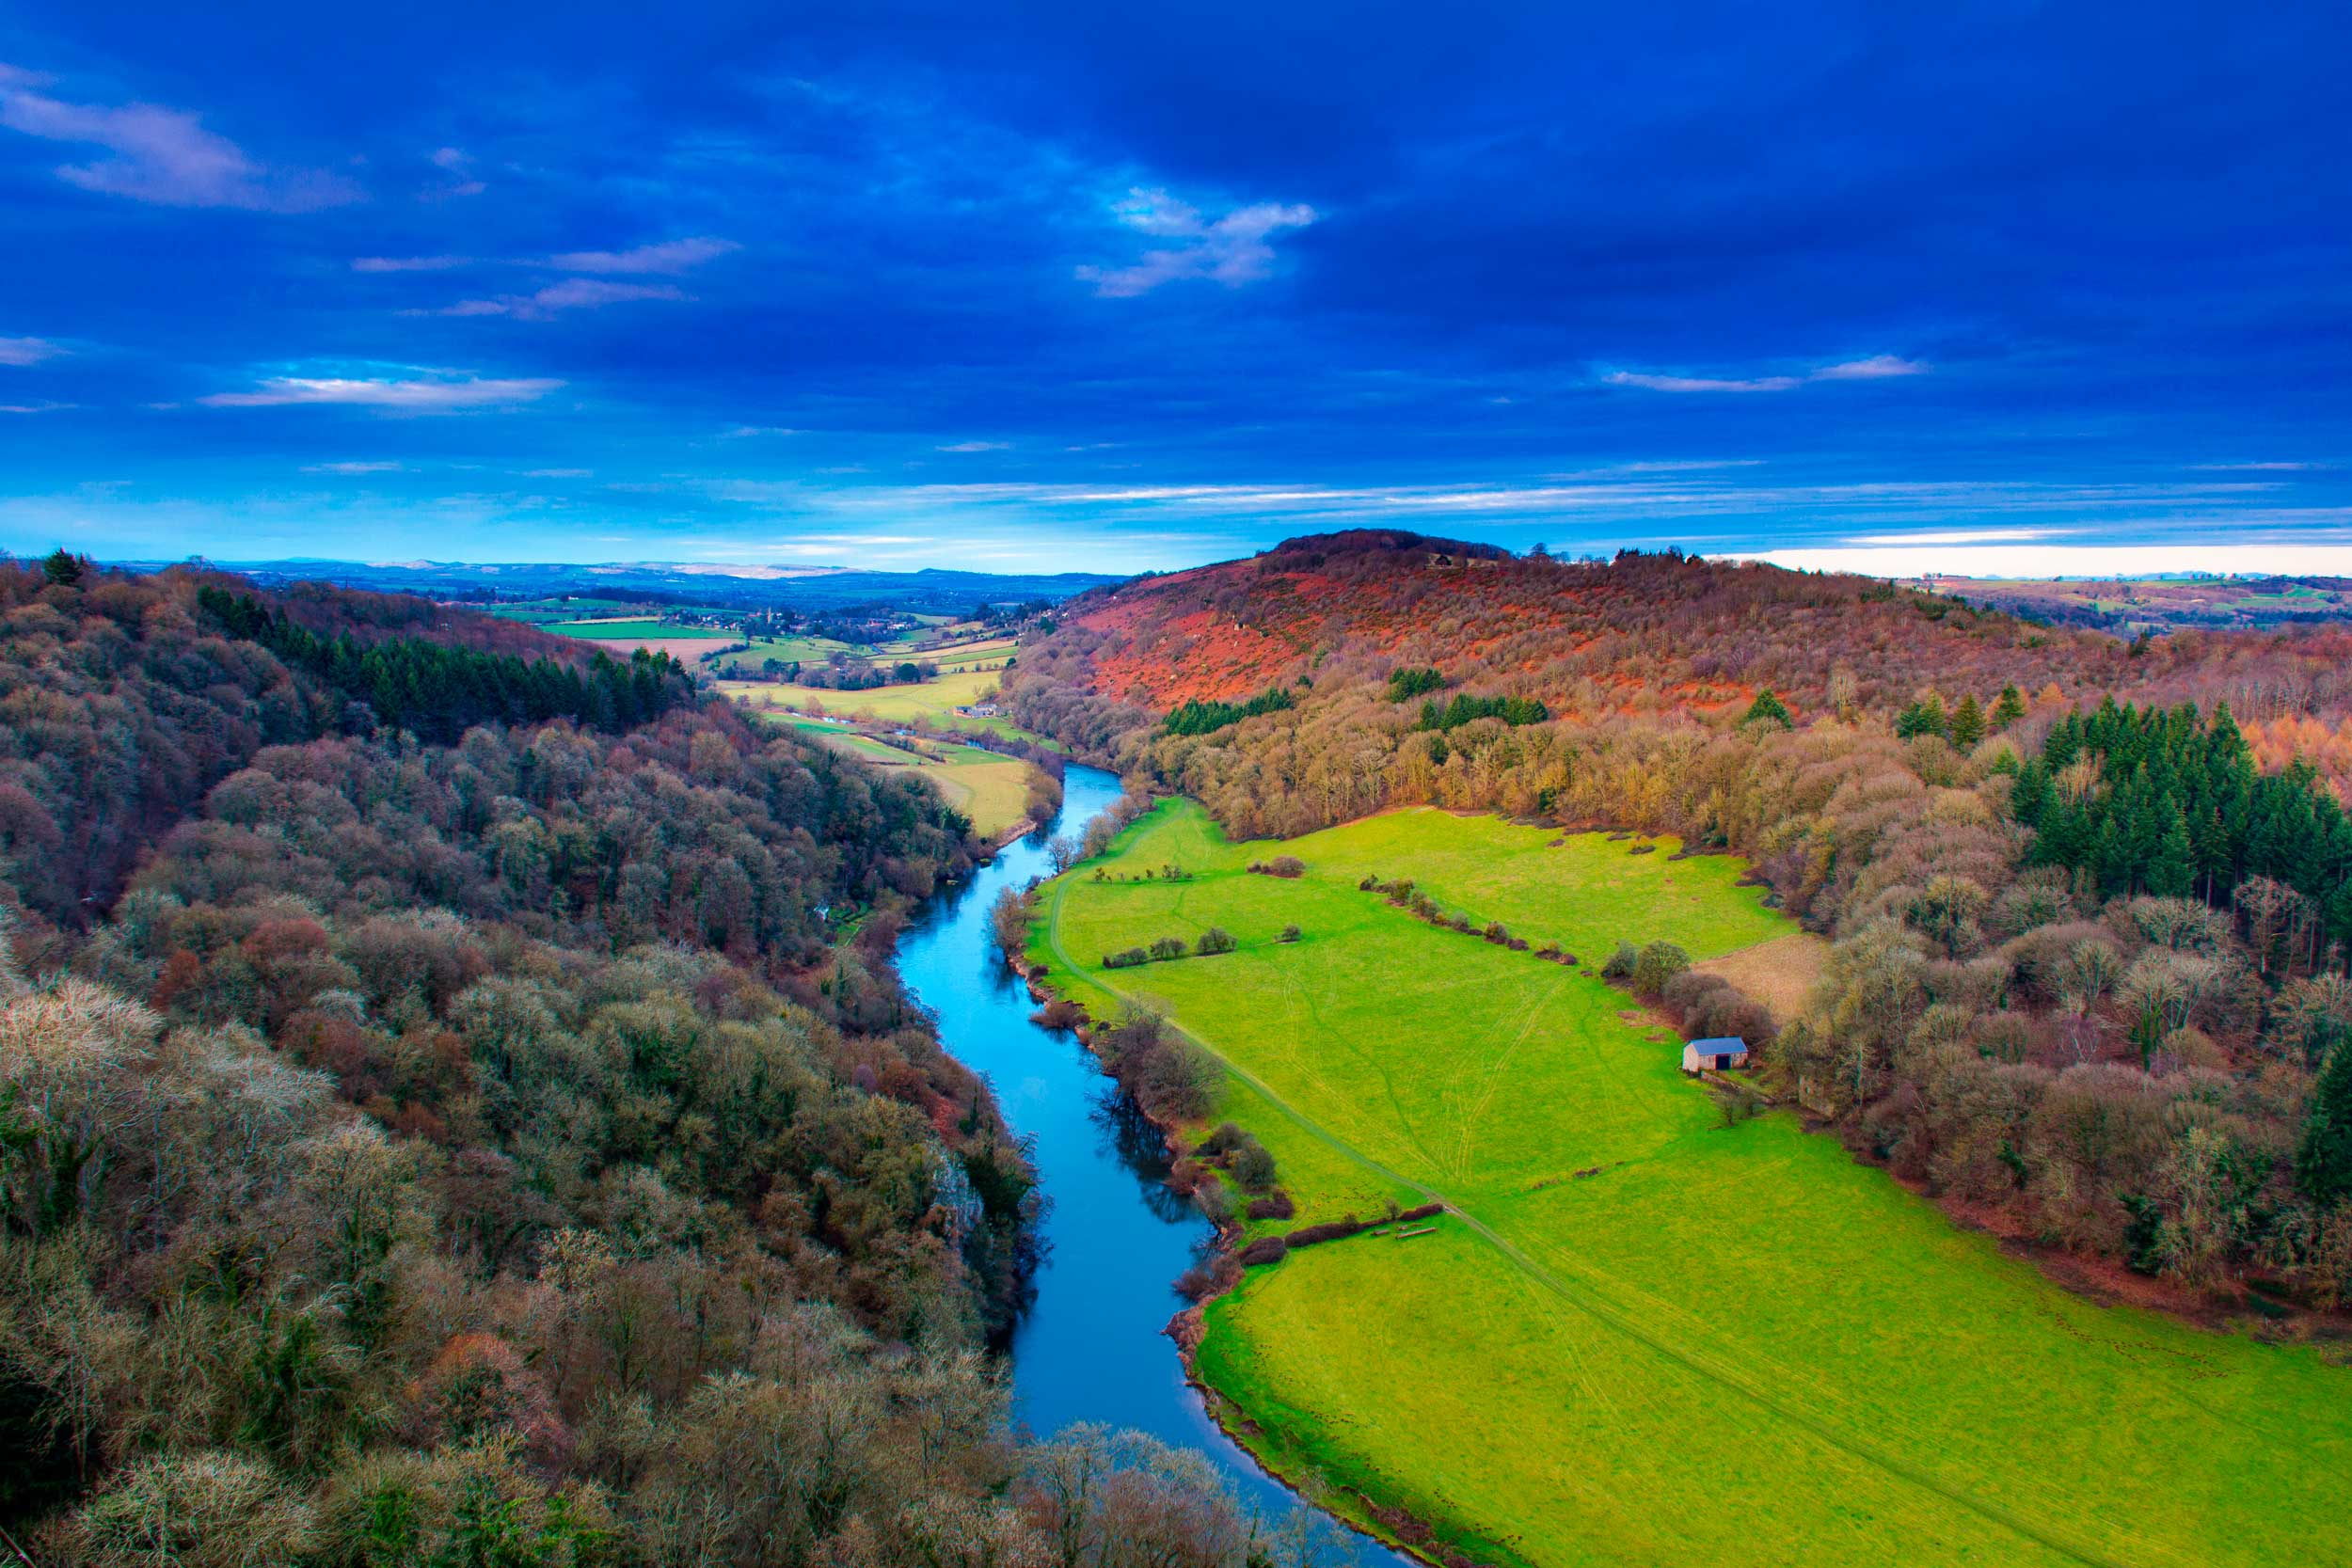 The Symonds Yat view of the river Wye again  (SuxxesPhoto/Shutterstock)